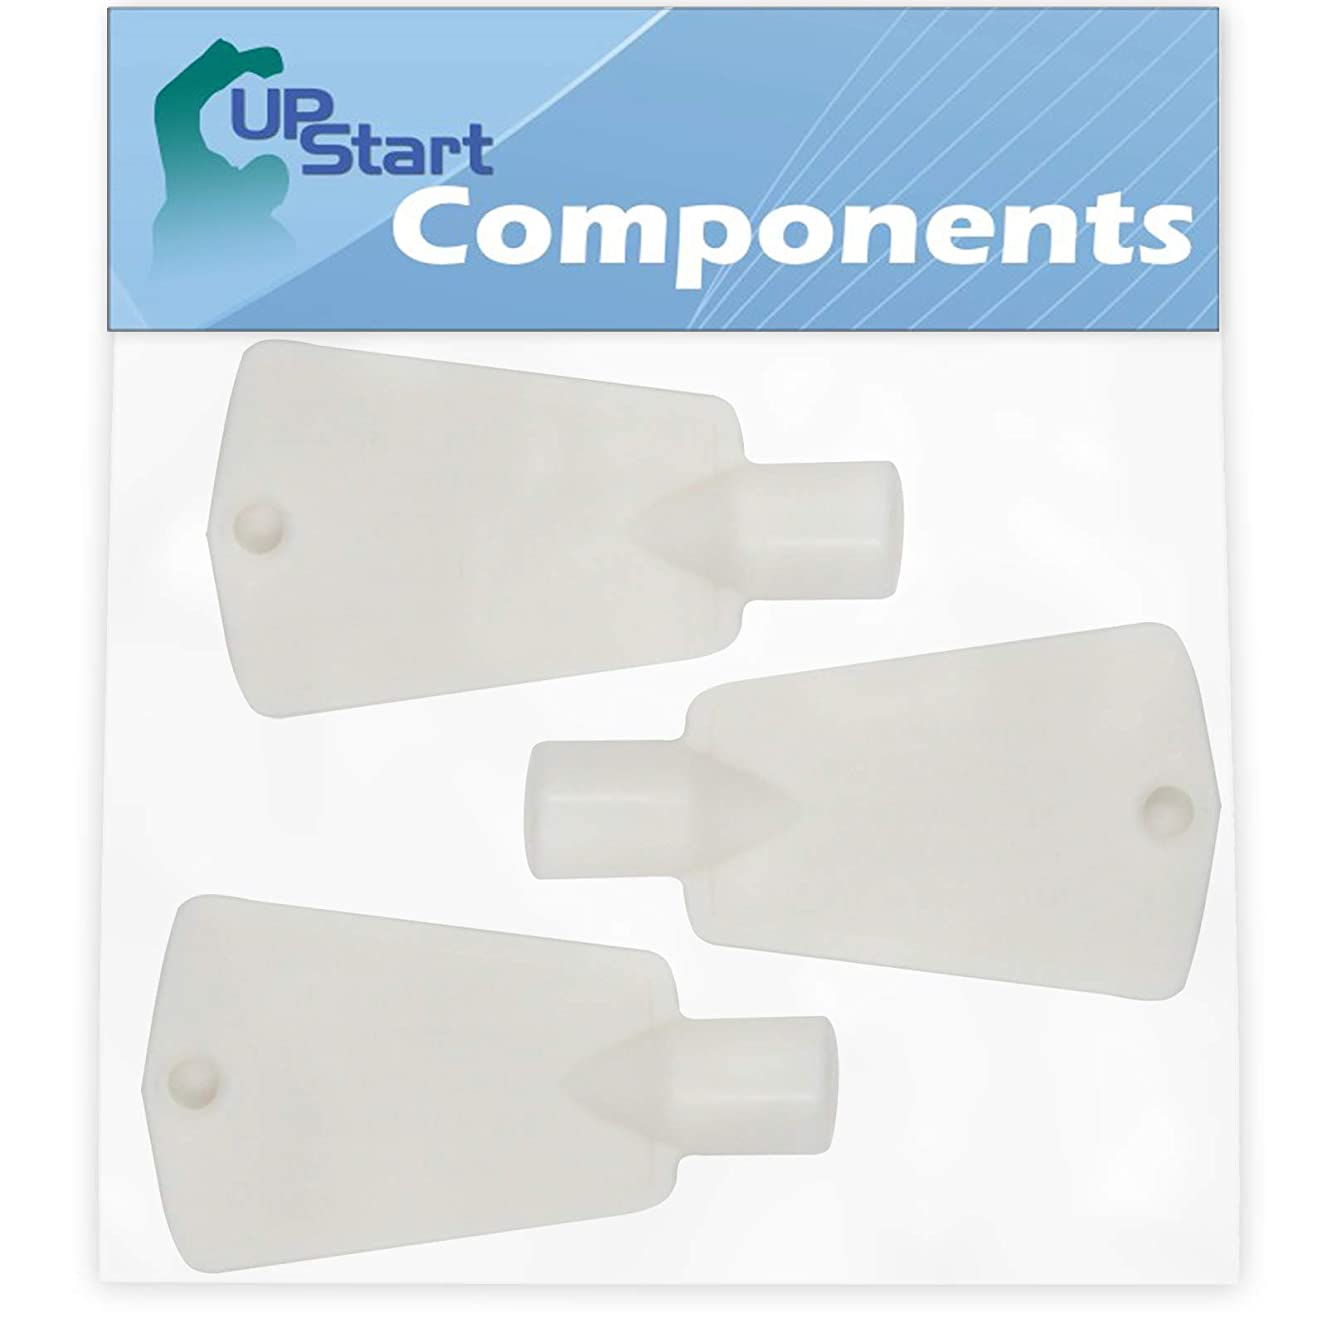 3-Pack 297147700 Freezer Door Key Replacement for Kenmore/Sears 25326062103 Freezer - Compatible with 297147700 Lock Key - UpStart Components Brand